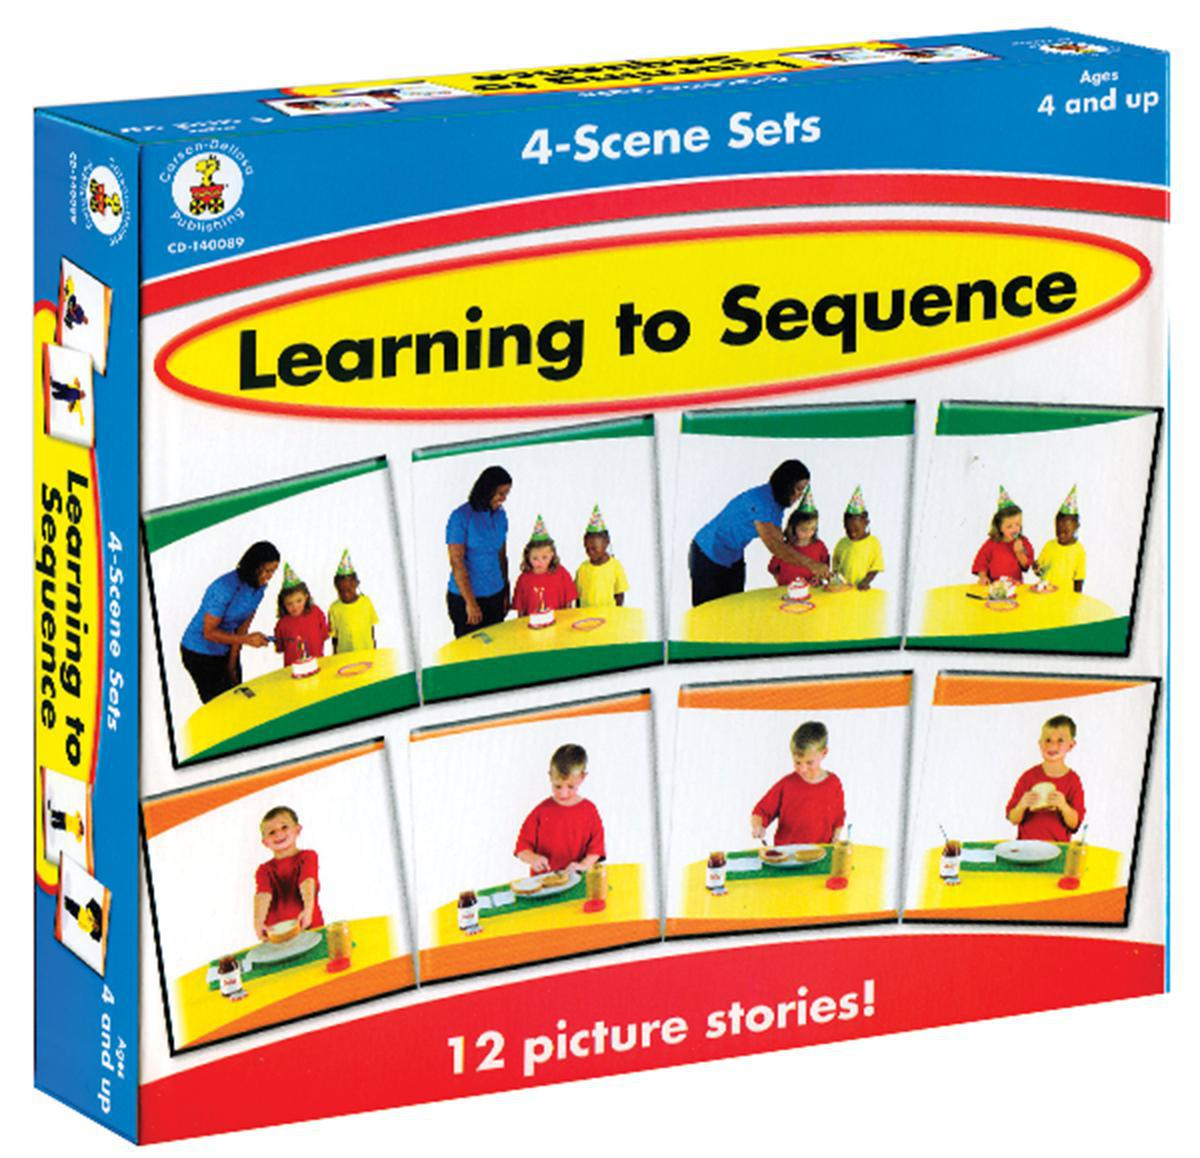 Learning to Sequence: 4-Scene Sets